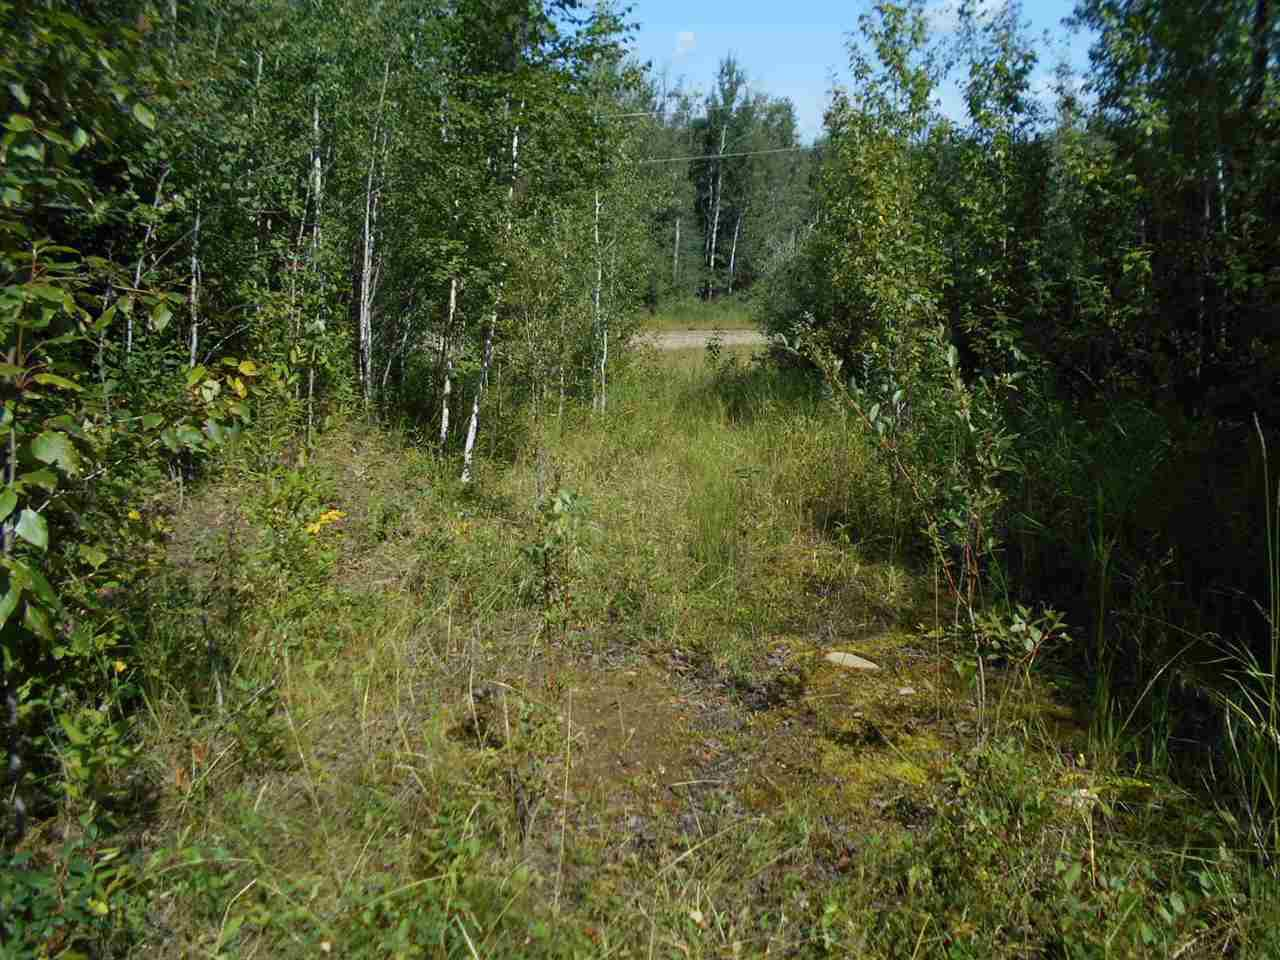 Photo 6: Photos: 22 Morgan Way: Rural Lac Ste. Anne County Rural Land/Vacant Lot for sale : MLS®# E4209833